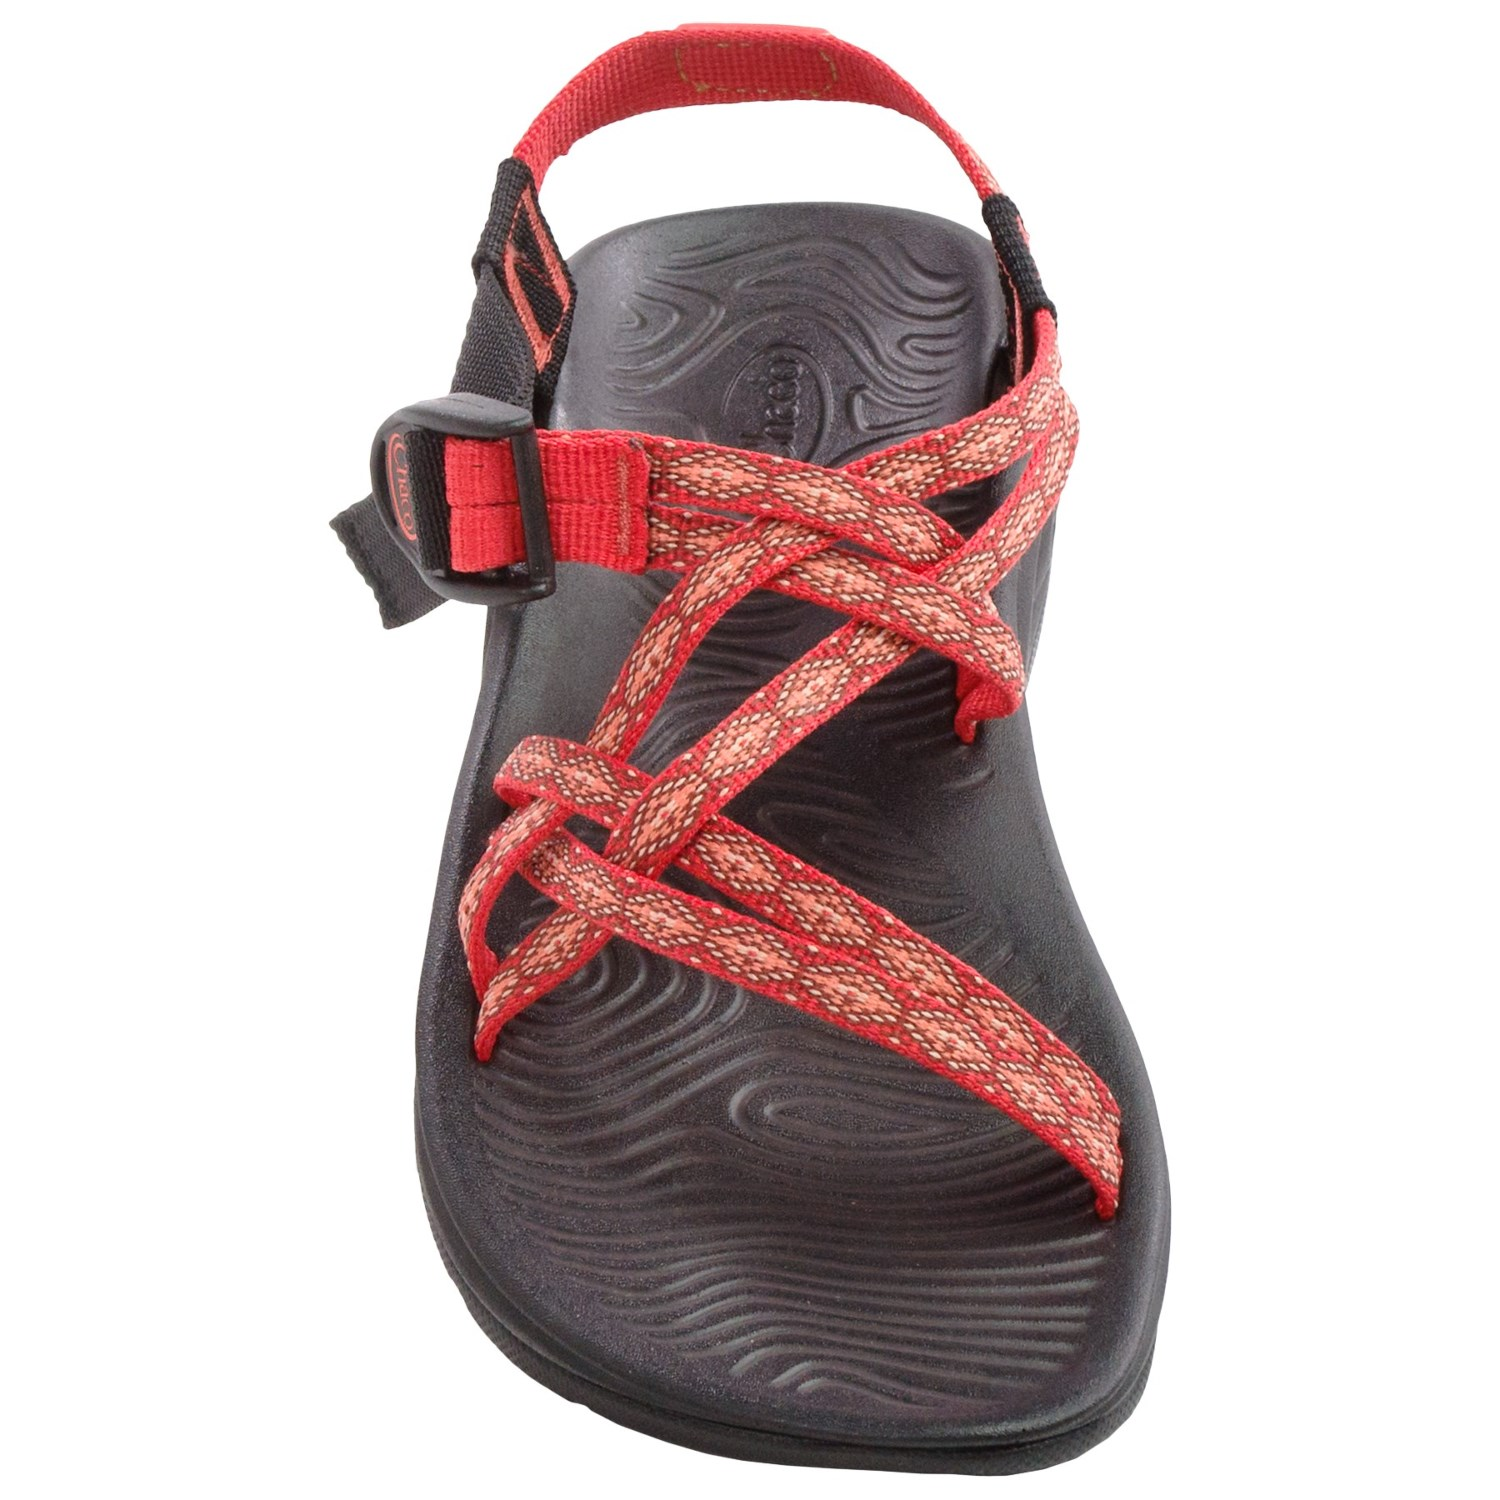 Chaco Z Volv X Sport Sandals For Women Save 30